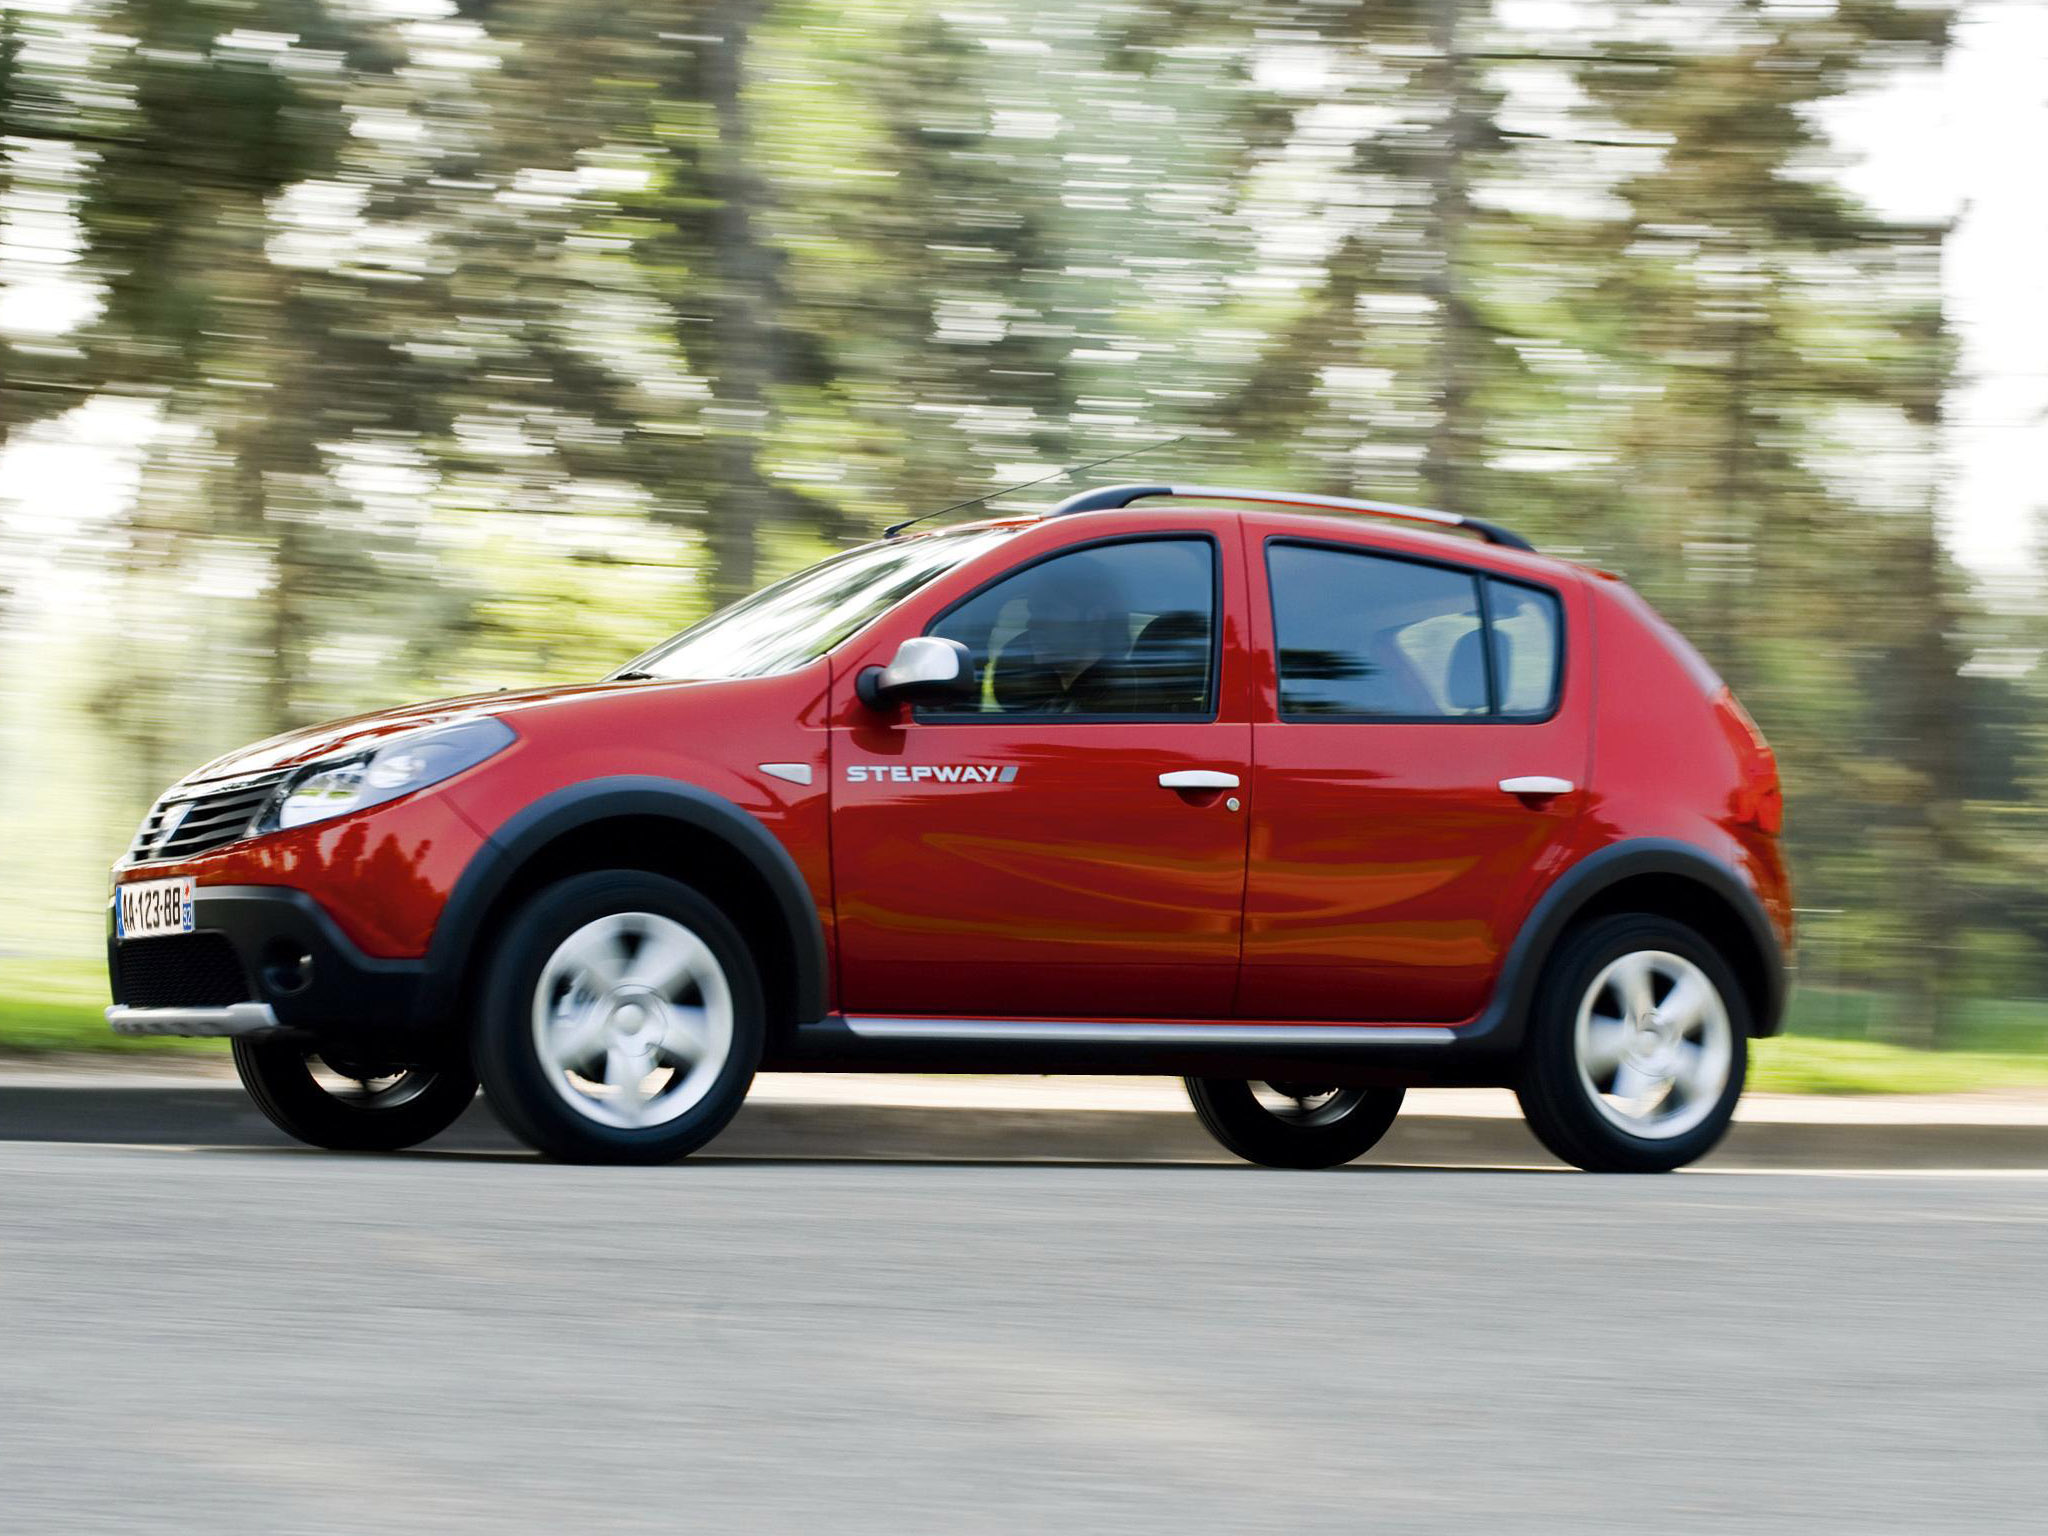 dacia sandero stepway 2009 dacia sandero stepway 2009 photo 25 car in pictures car photo gallery. Black Bedroom Furniture Sets. Home Design Ideas